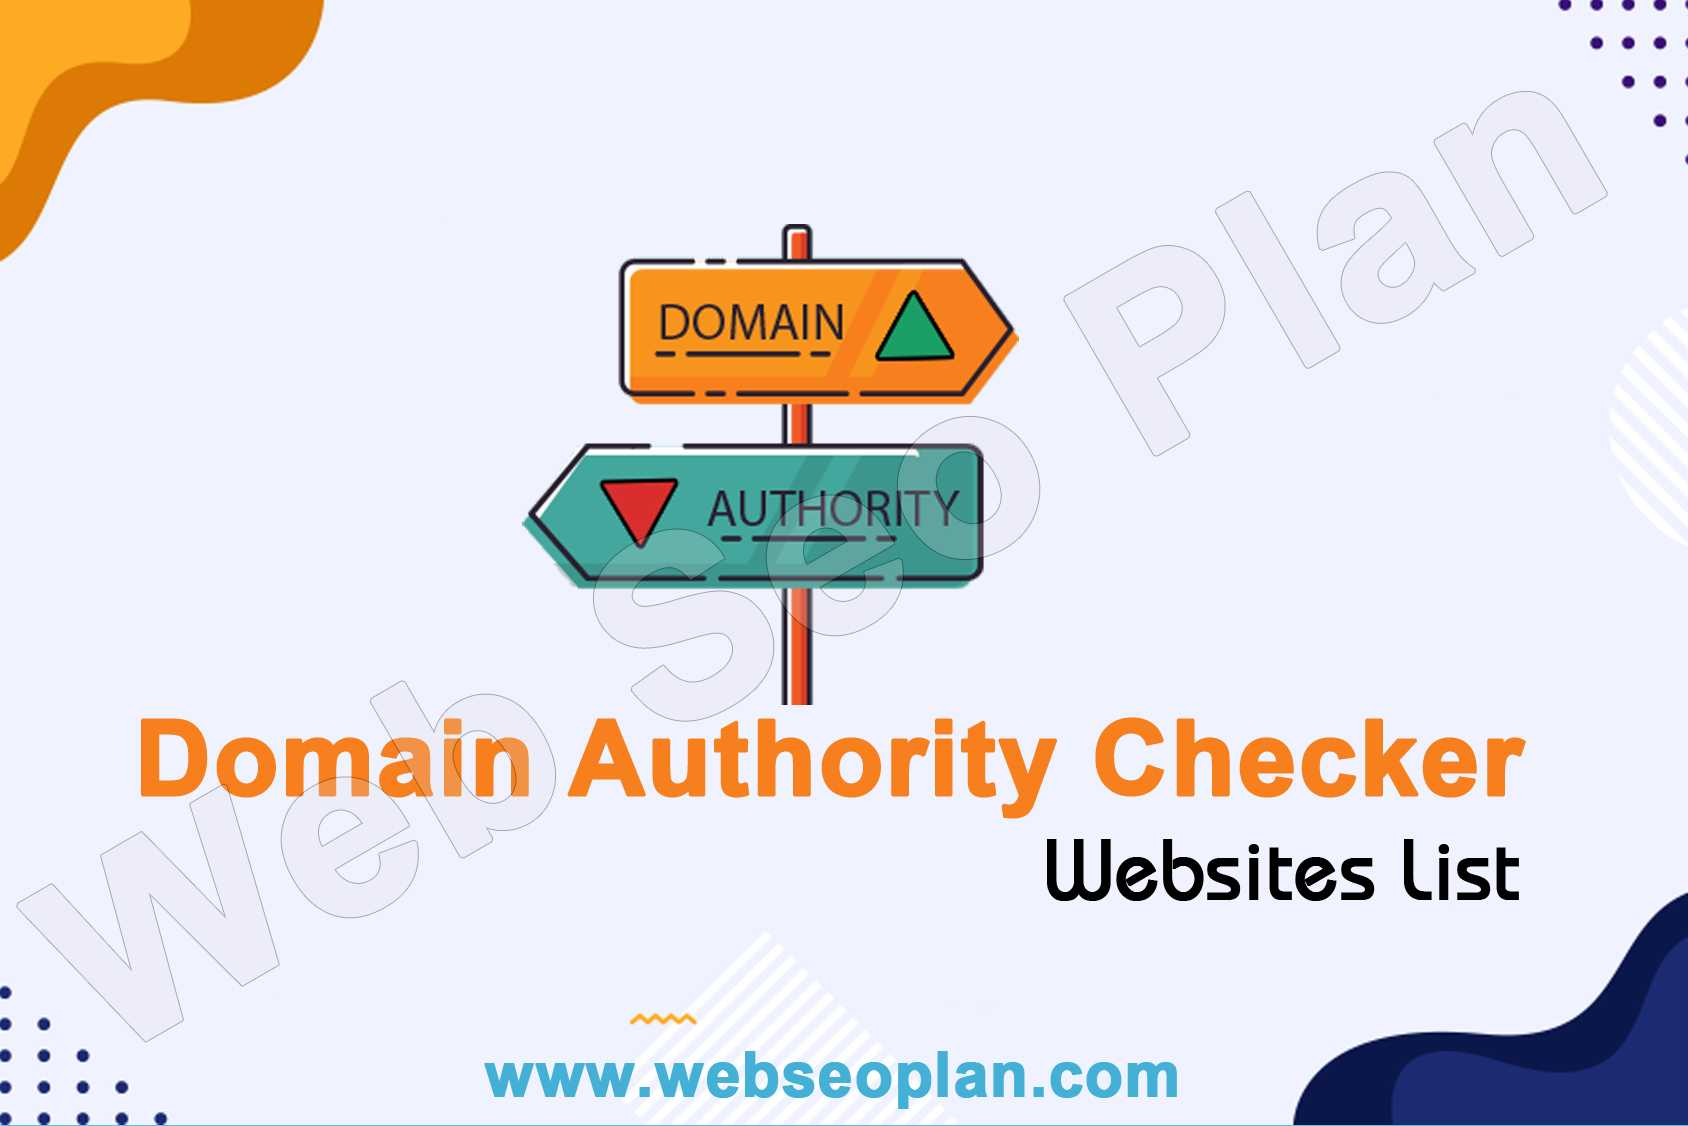 Domain Authority Checker Website List